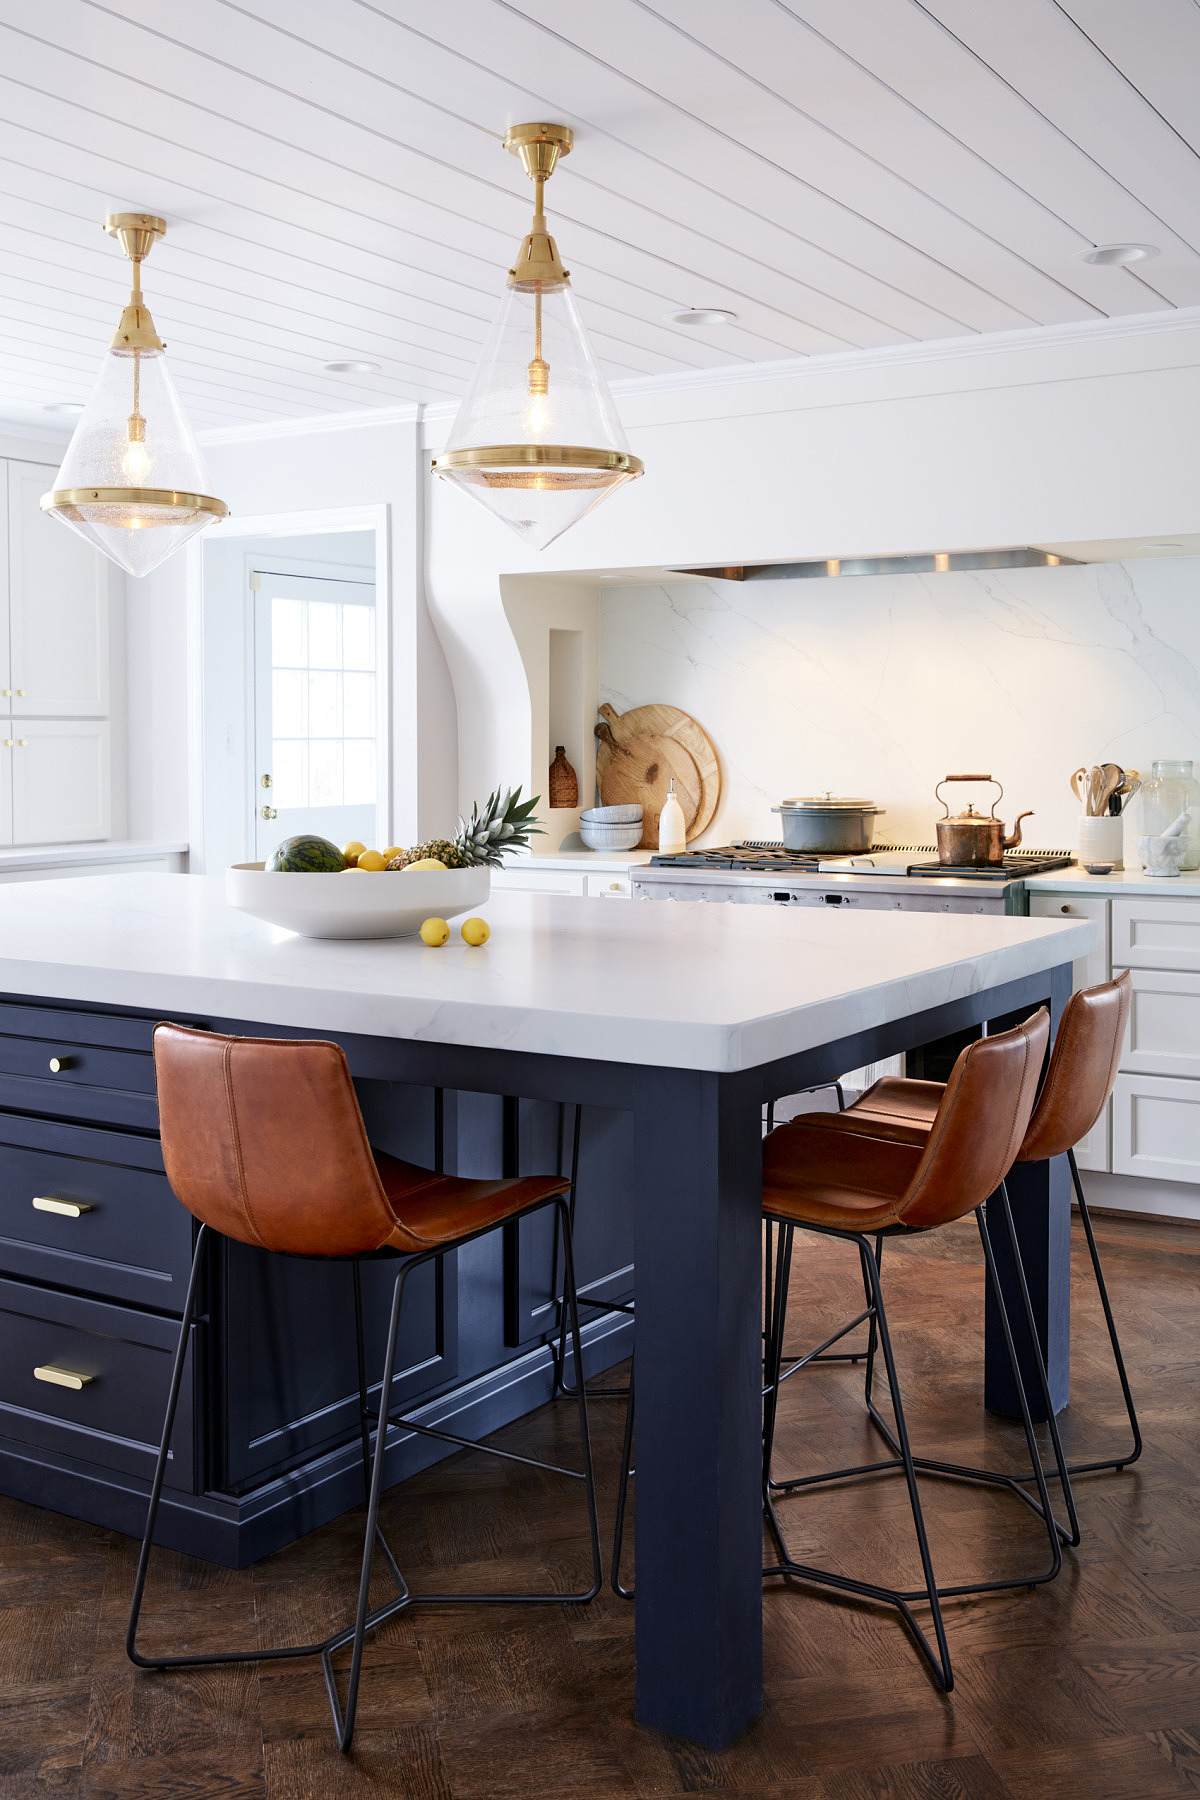 Gold and glass lighting fixtures over a dark navy kitchen island surrounded by leather stools